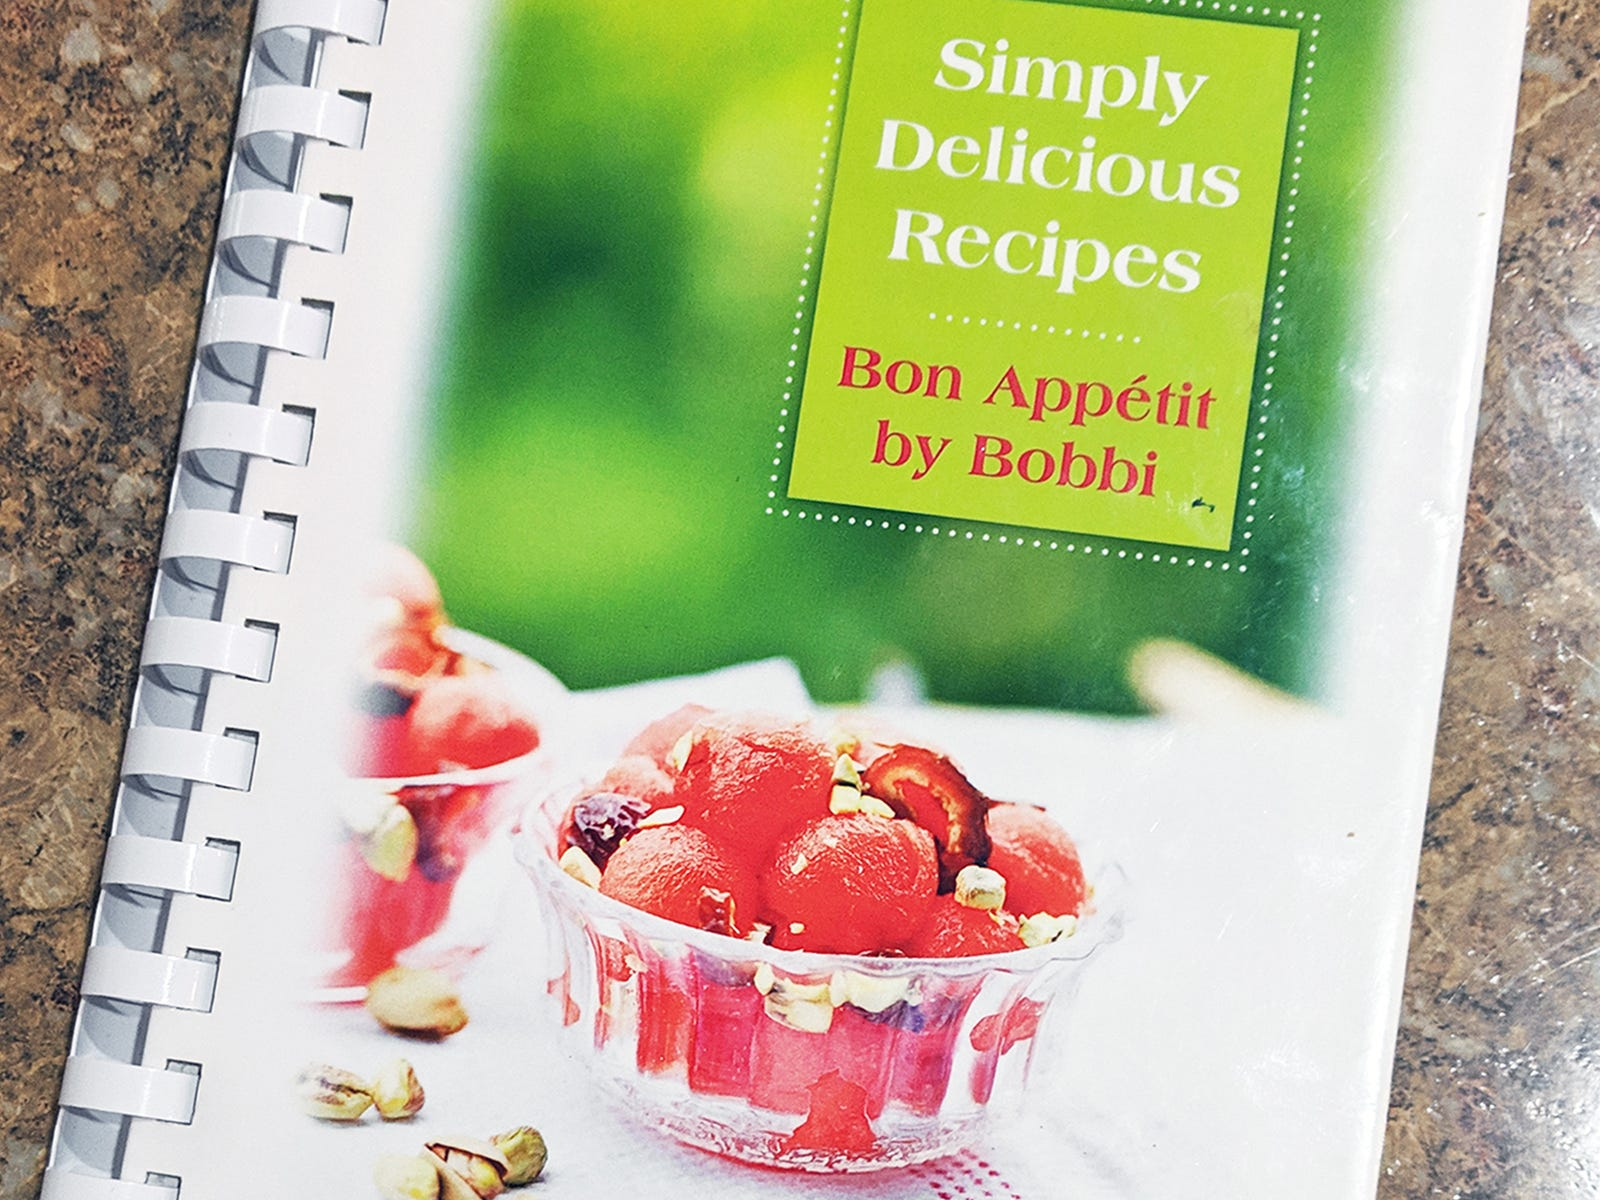 This is the Simply Delicious Recipes cookbook by Bobbi Leckrone on the kitchen counter of her York Township home.